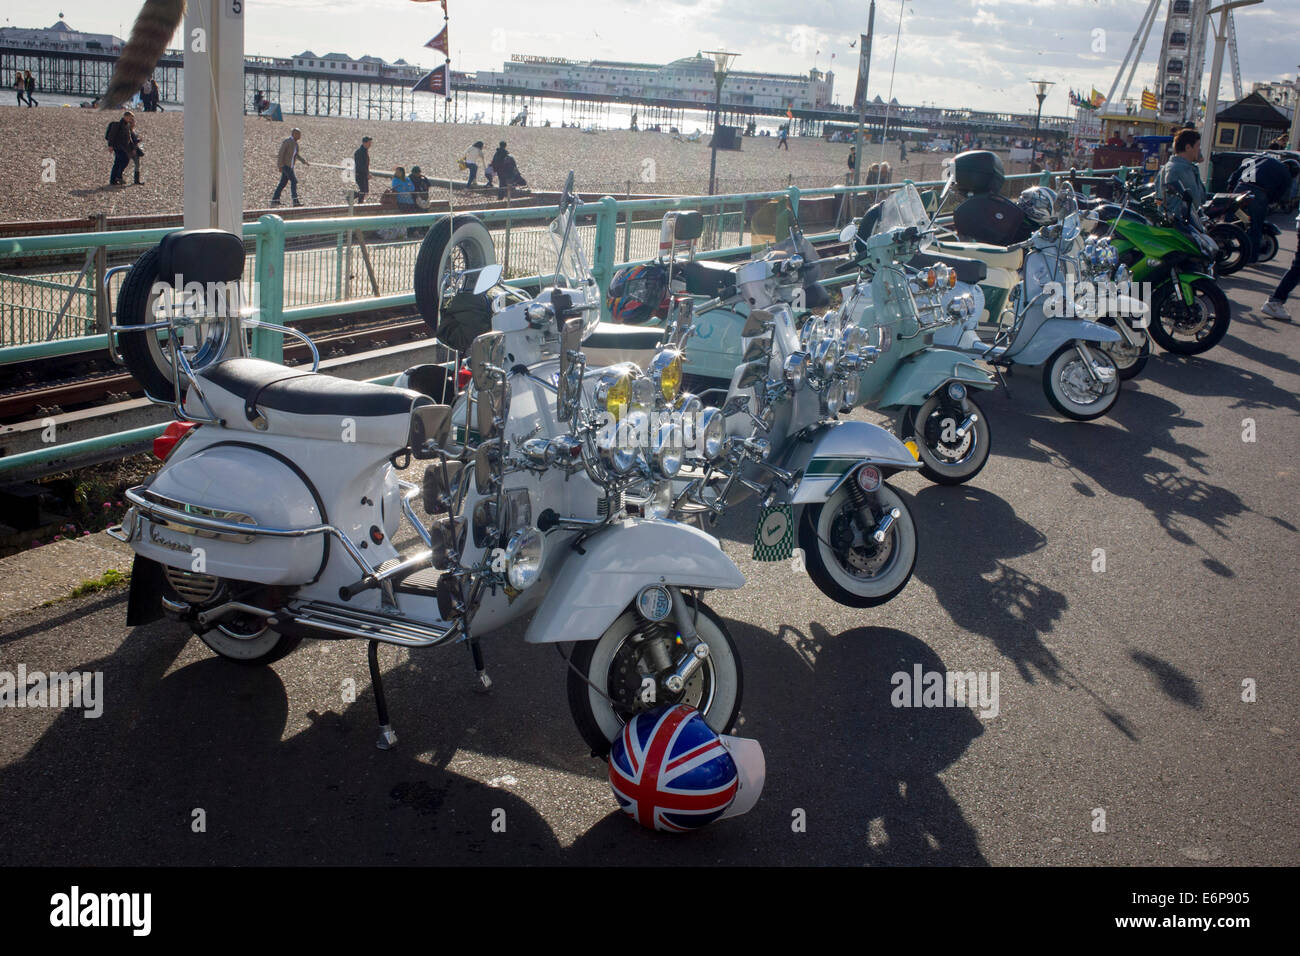 Vespa scooters on display on Brighton's seafront esplanade on Bank Holiday weekend. - Stock Image